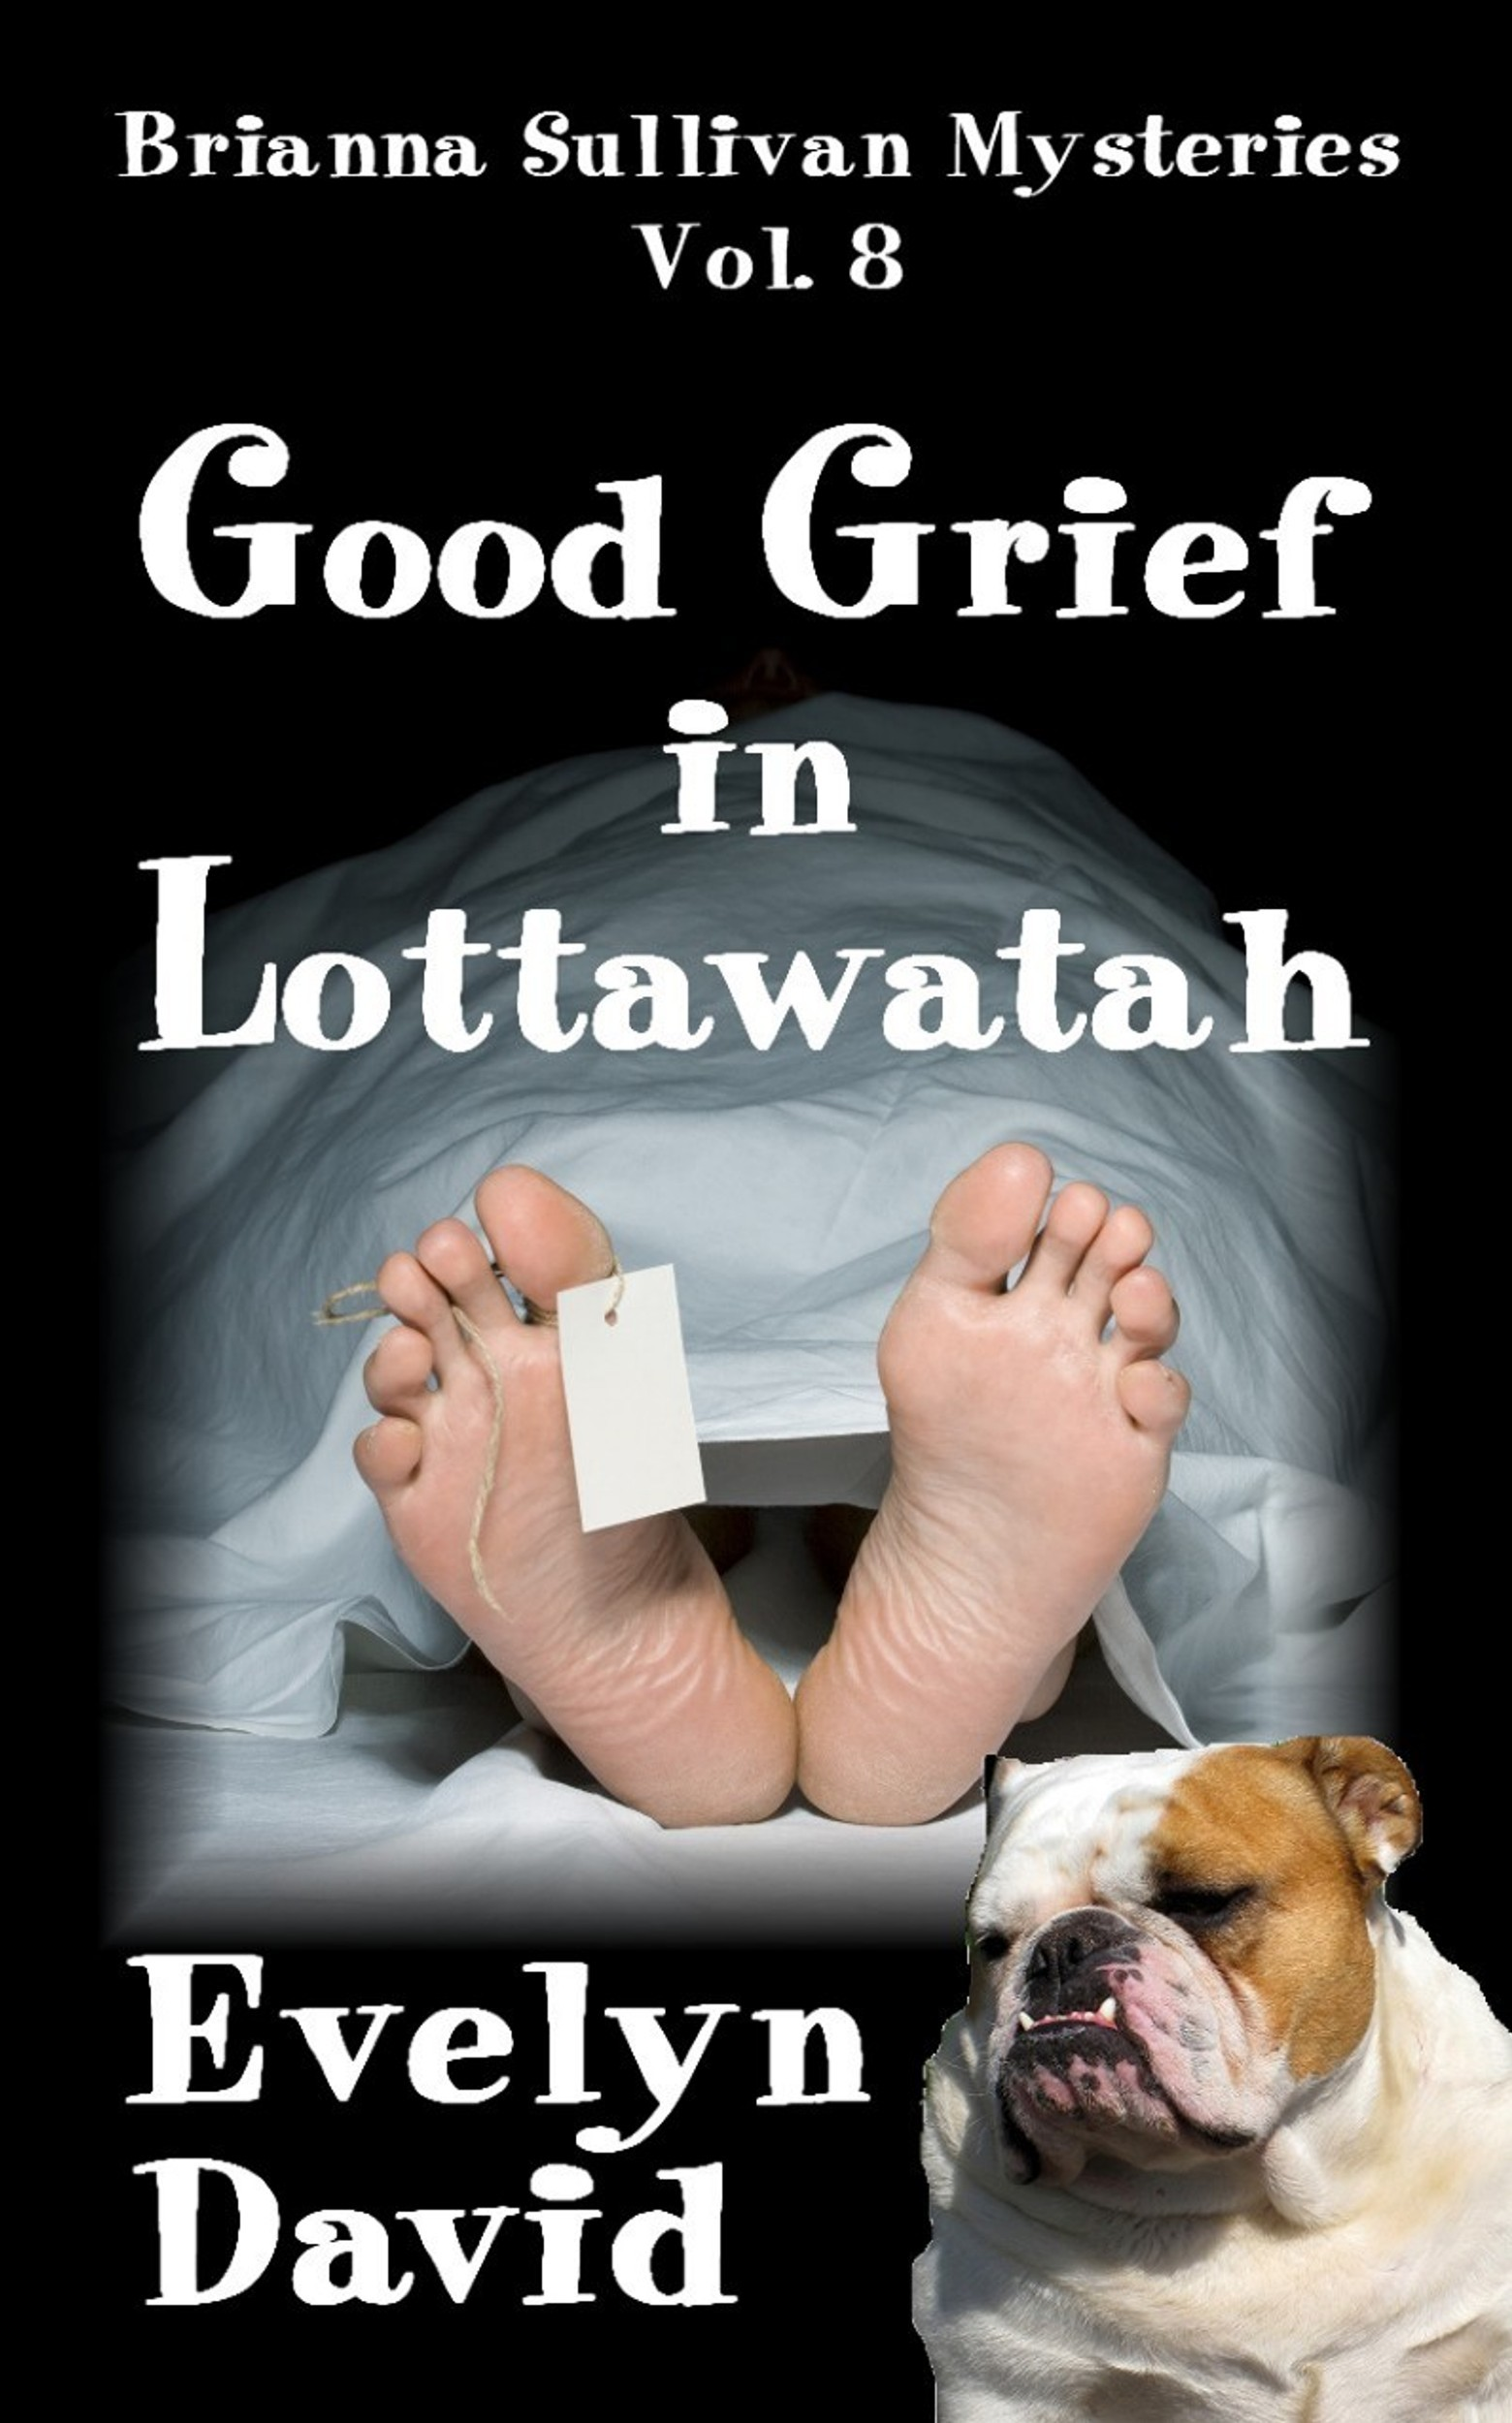 Good Grief in Lottawatah